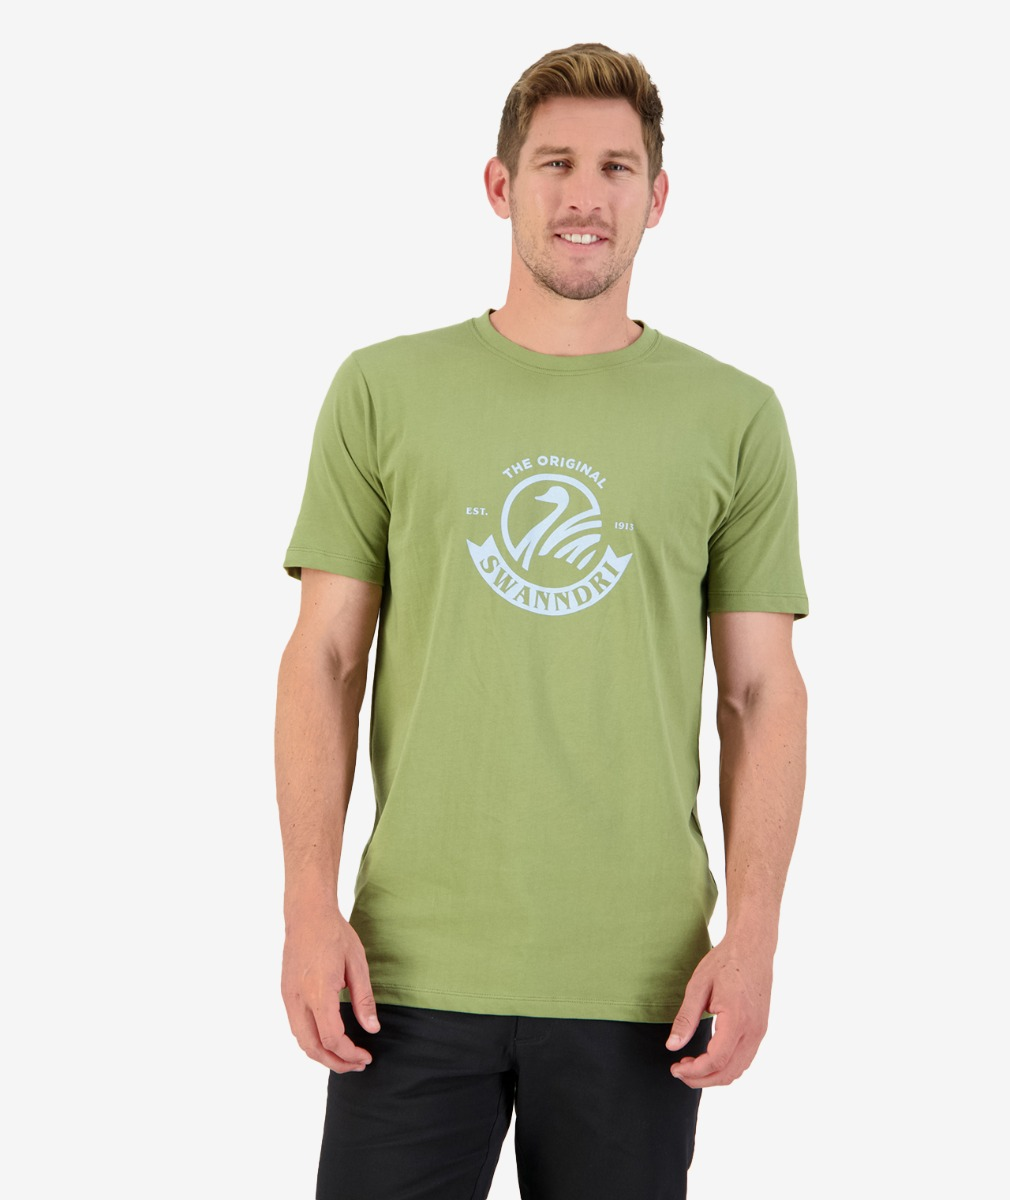 Original Printed Tee in Olive/Light Blue